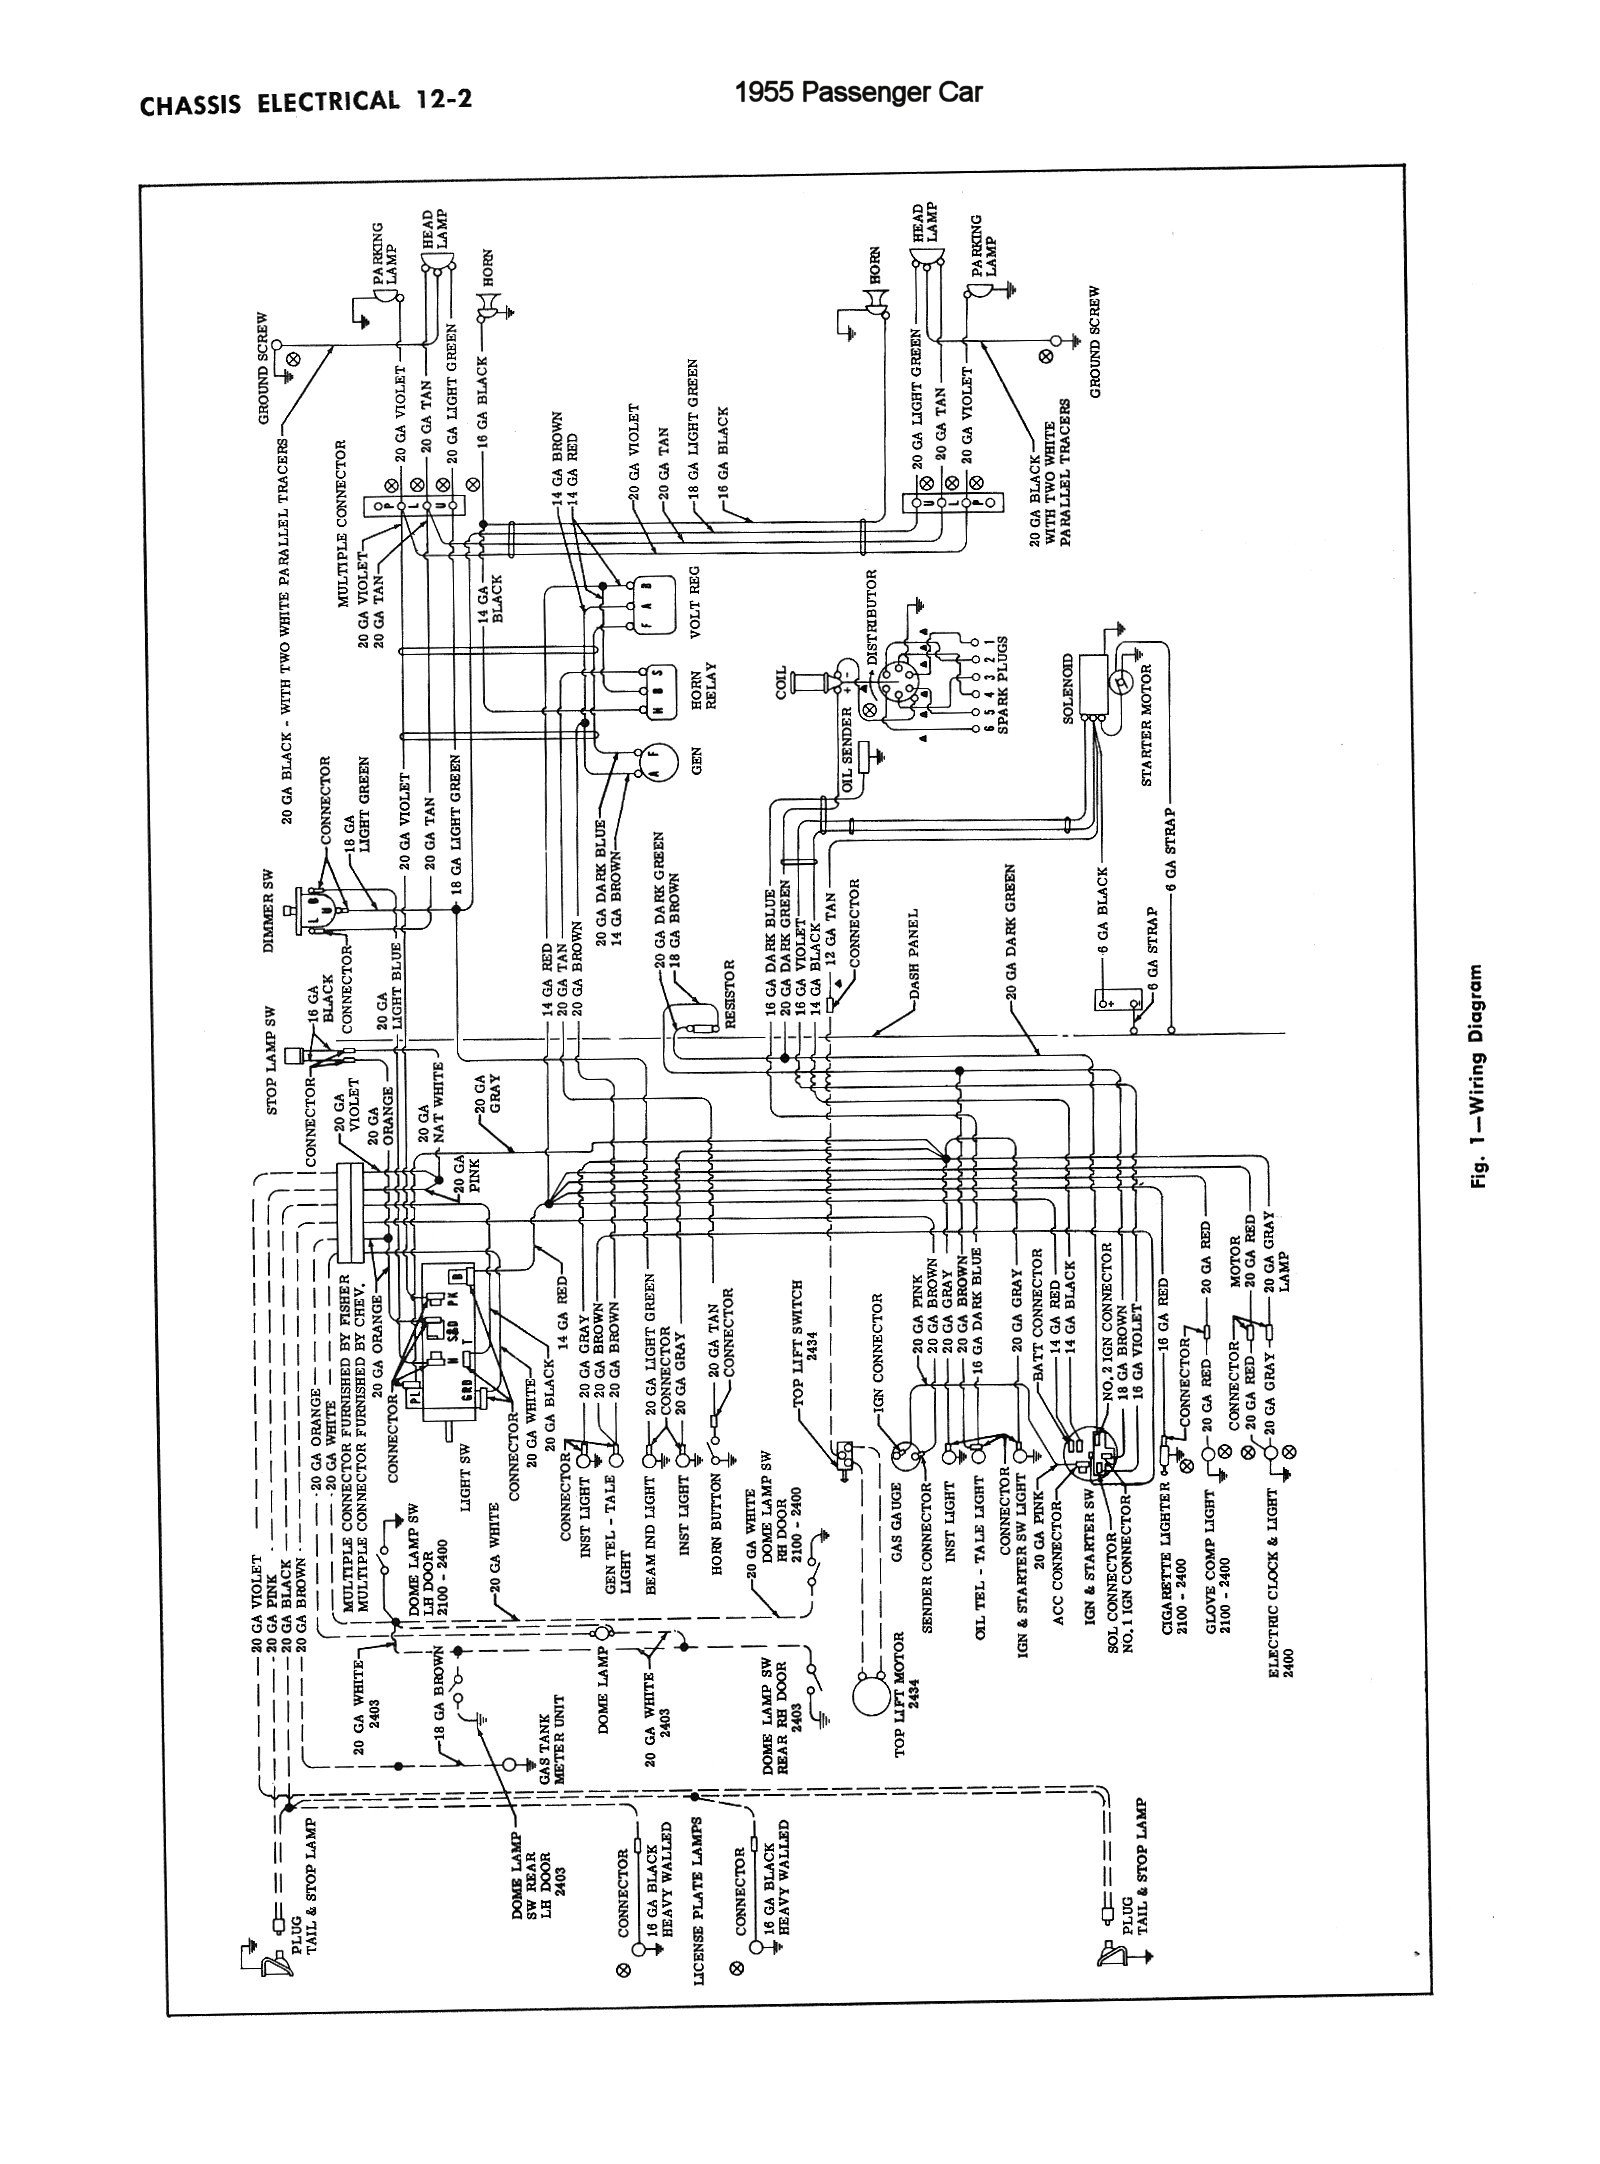 hight resolution of chevy wiring diagrams1955 car chassis electrical 1955 car chassis electrical